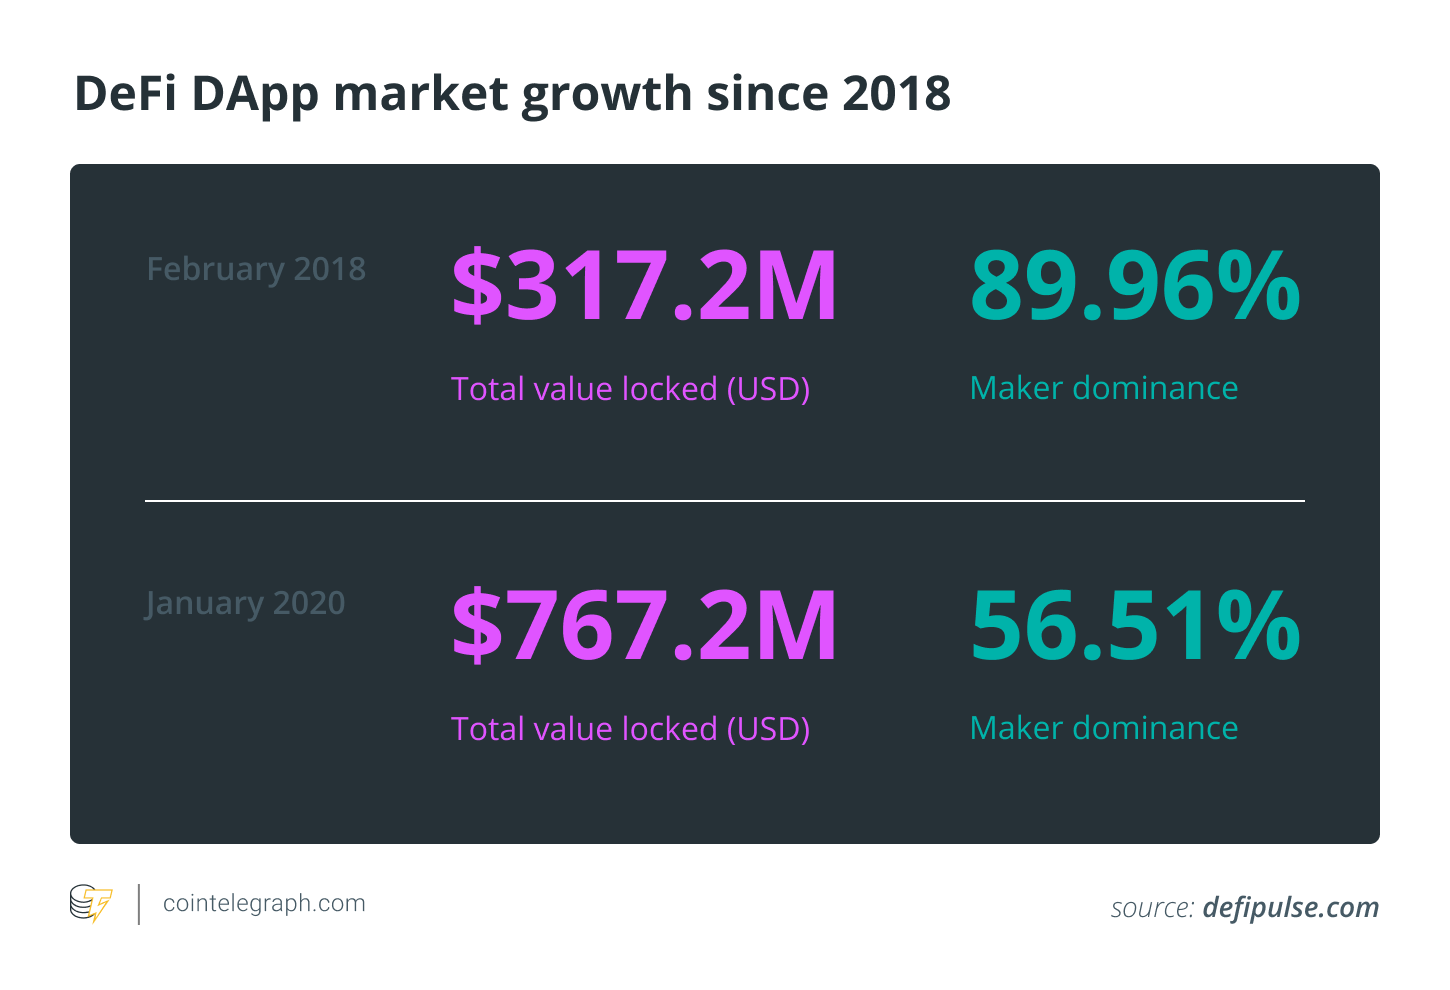 DeFi DApp market growth since 2018